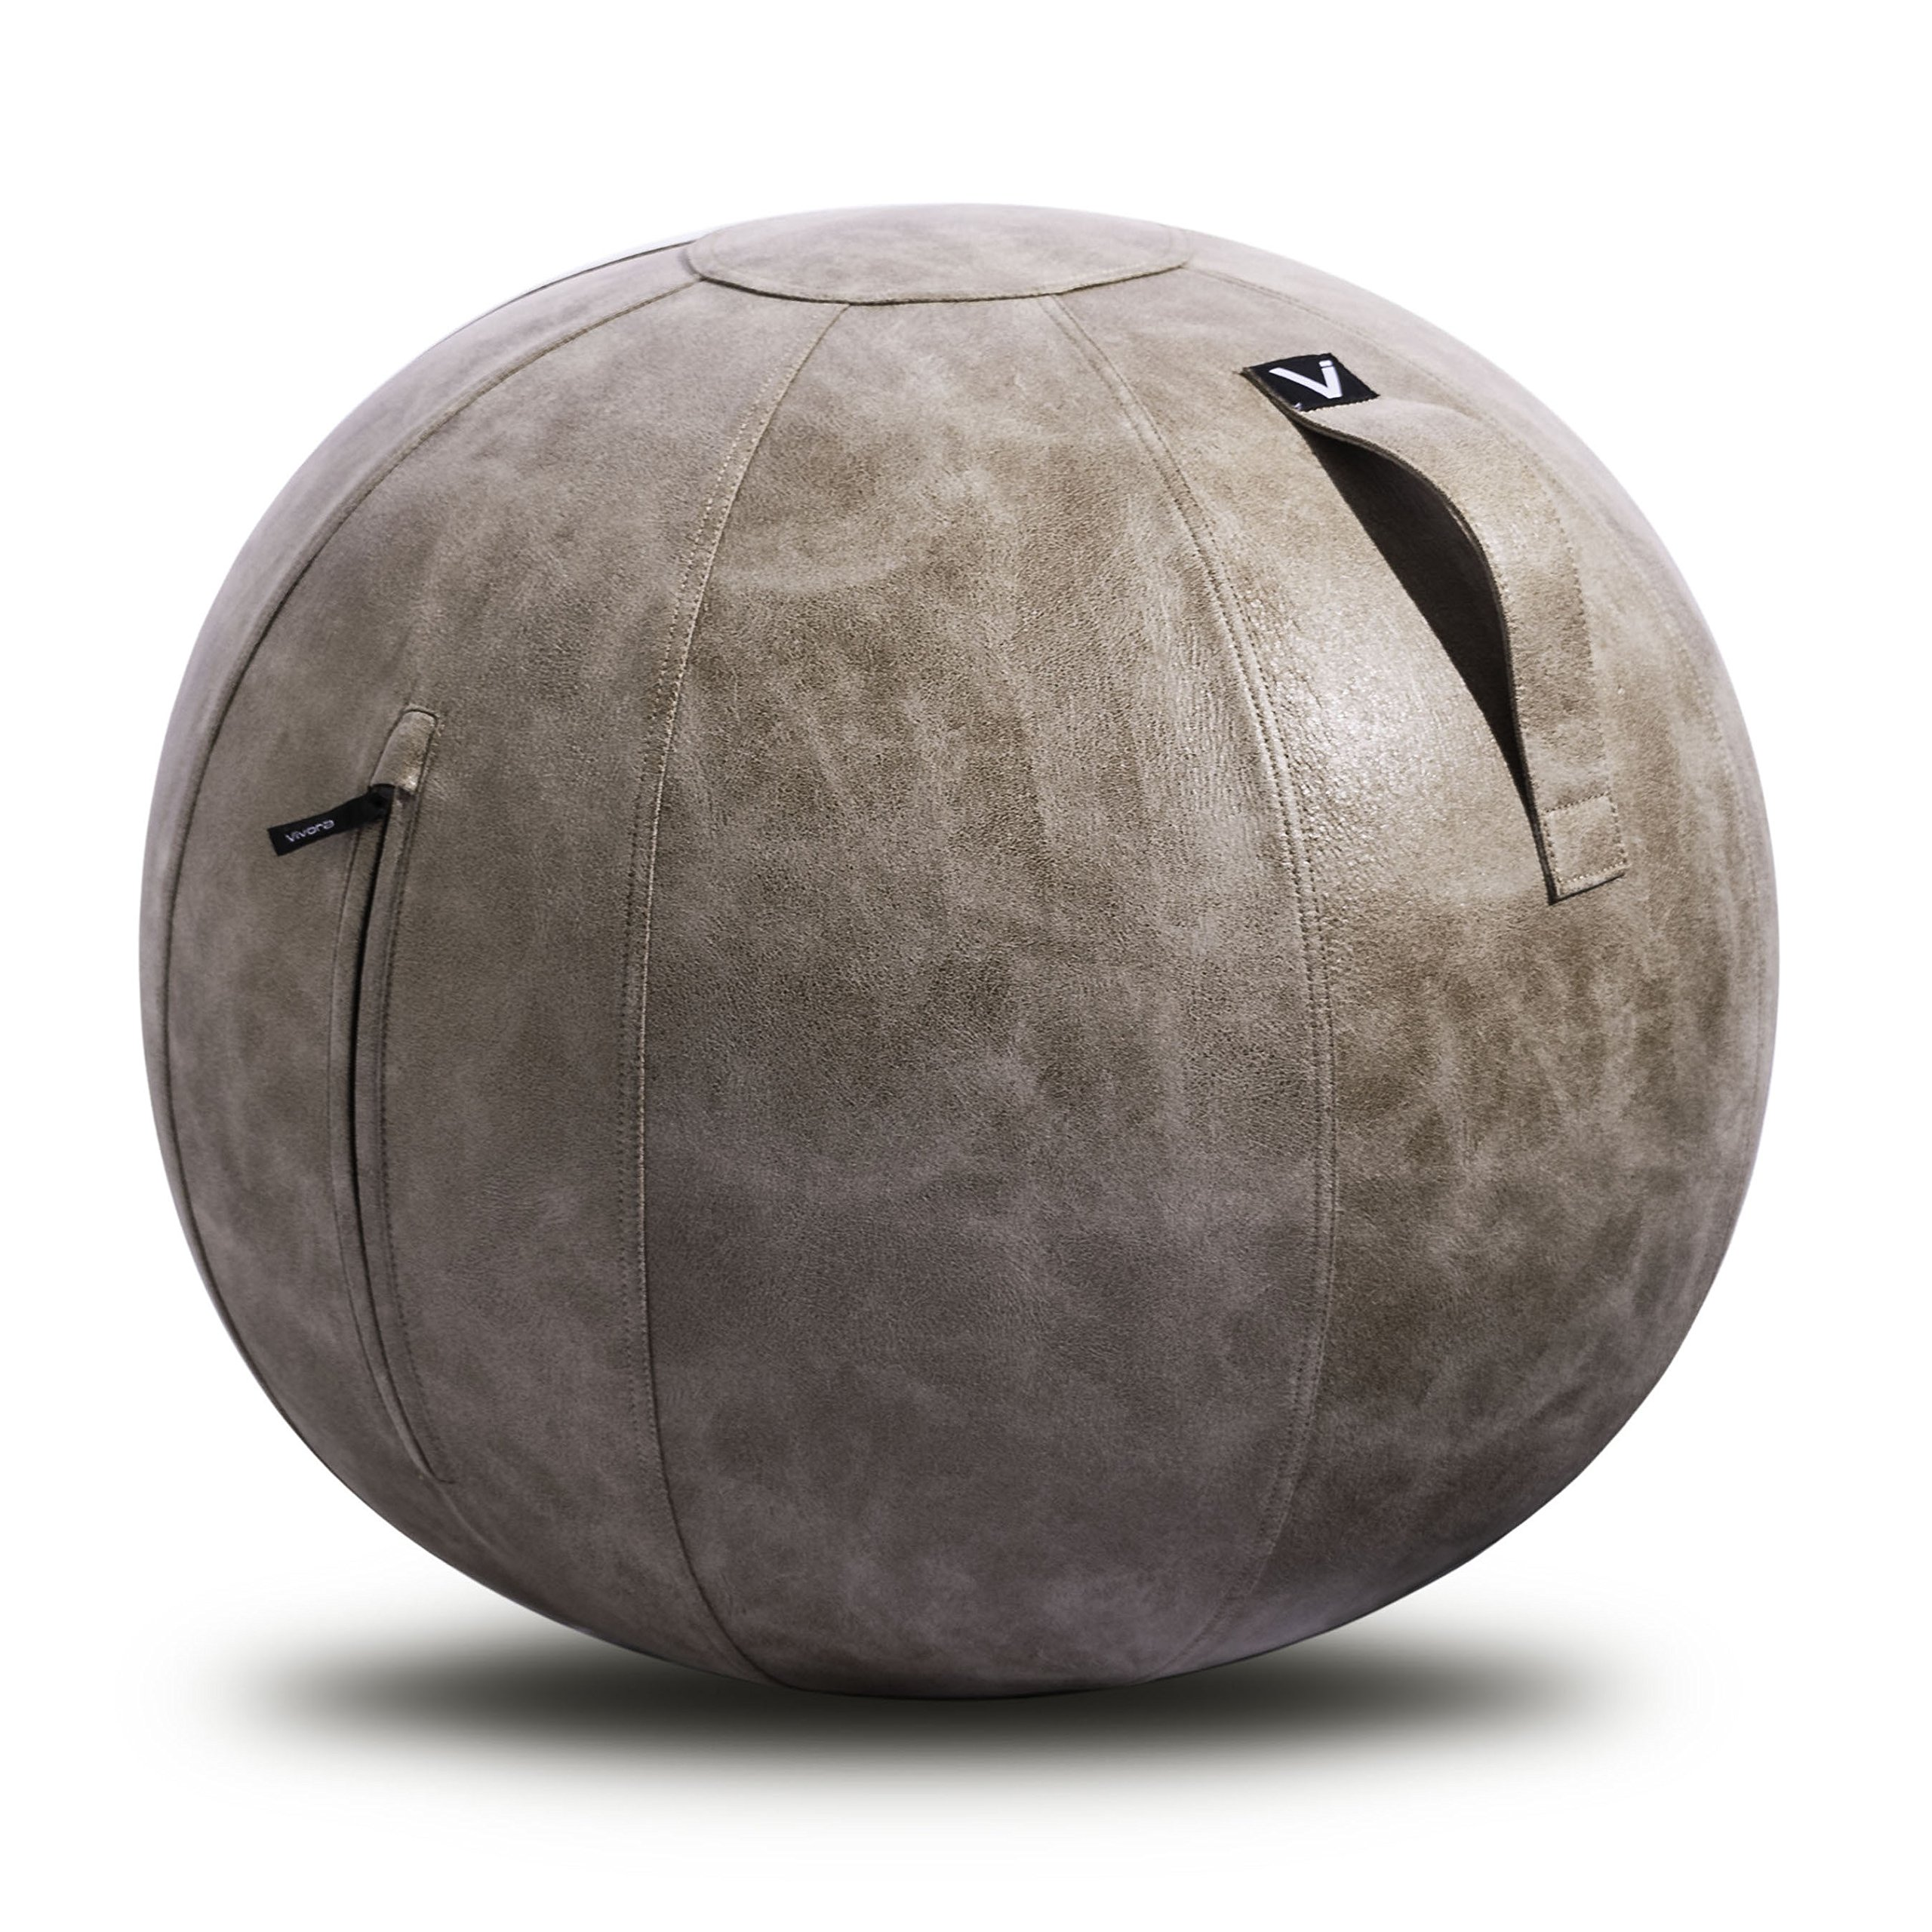 Vivora Luno - Sitting Ball Chair for Office and Home, Lightweight Self-Standing Ergonomic Posture Activating Exercise Ball Solution with Handle & Cover, Classroom & Yoga, Standard by Vivora